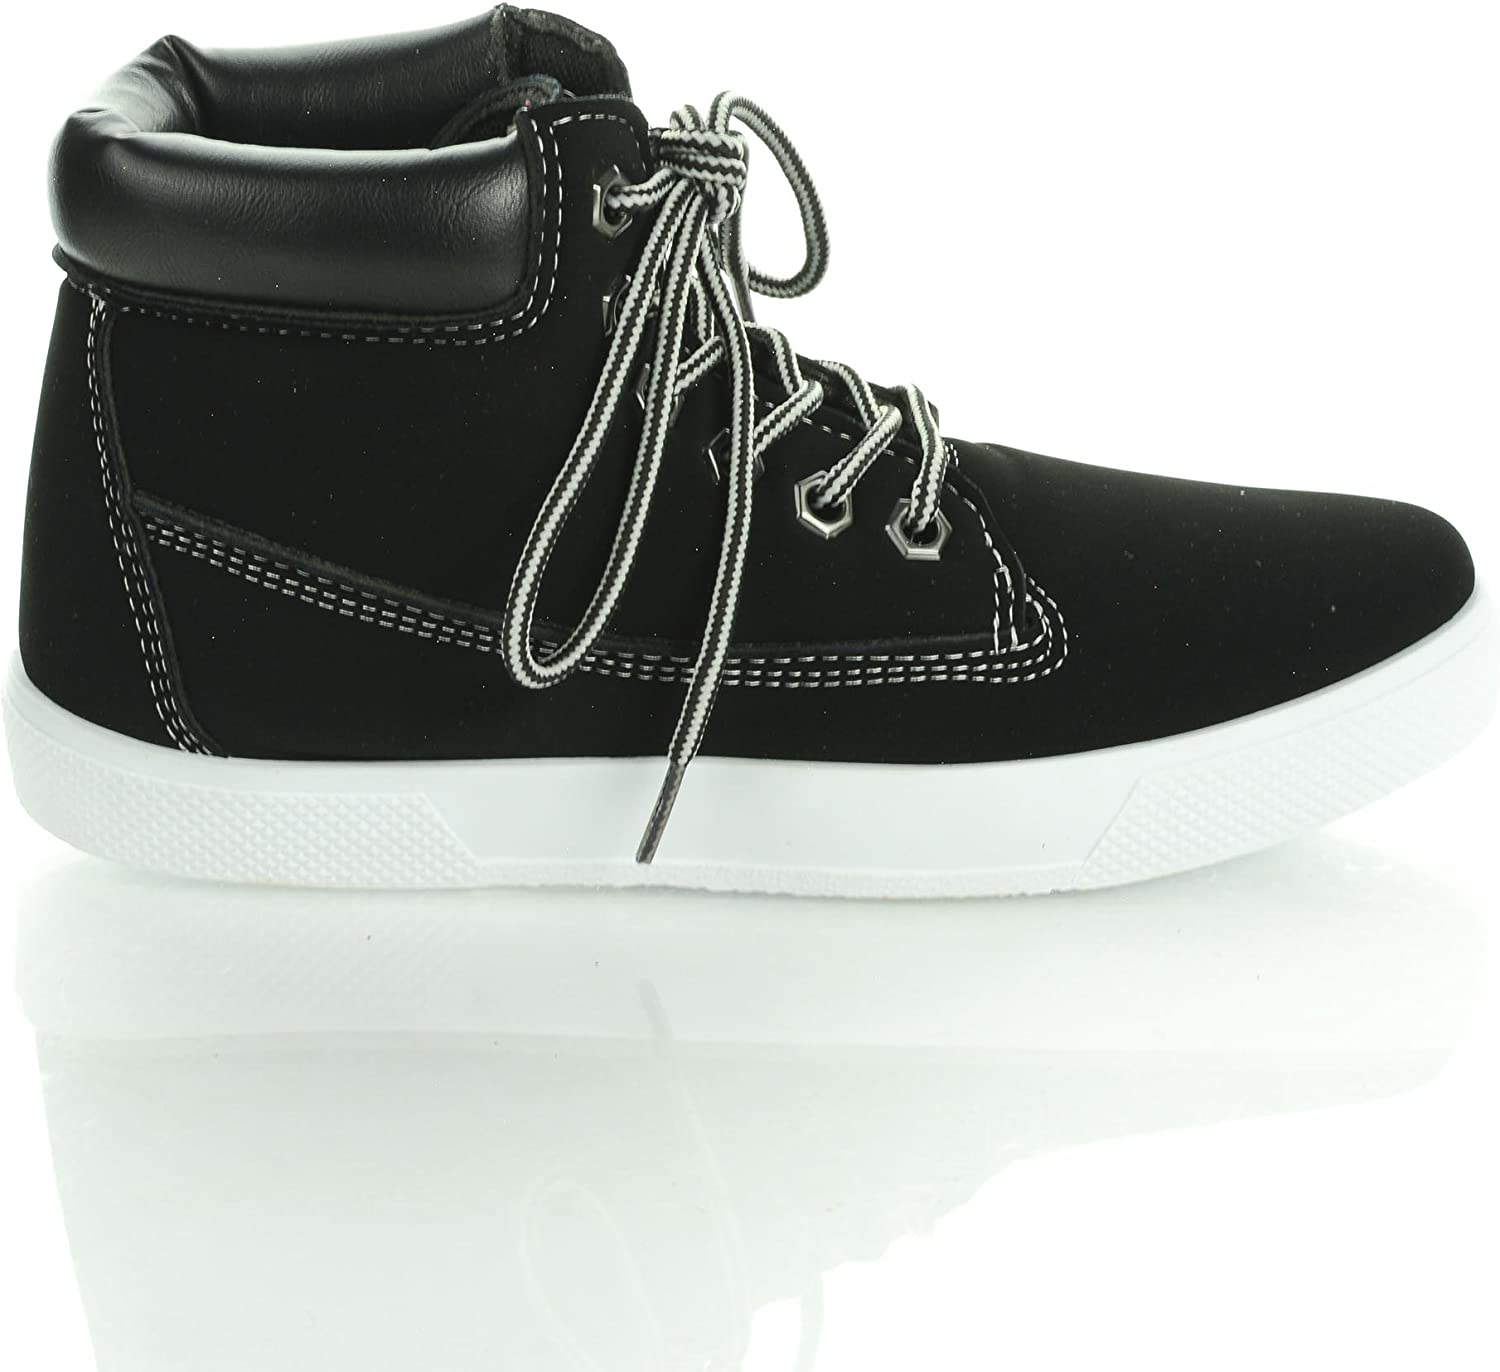 Boot Lace Up Flat Fashion Sneaker